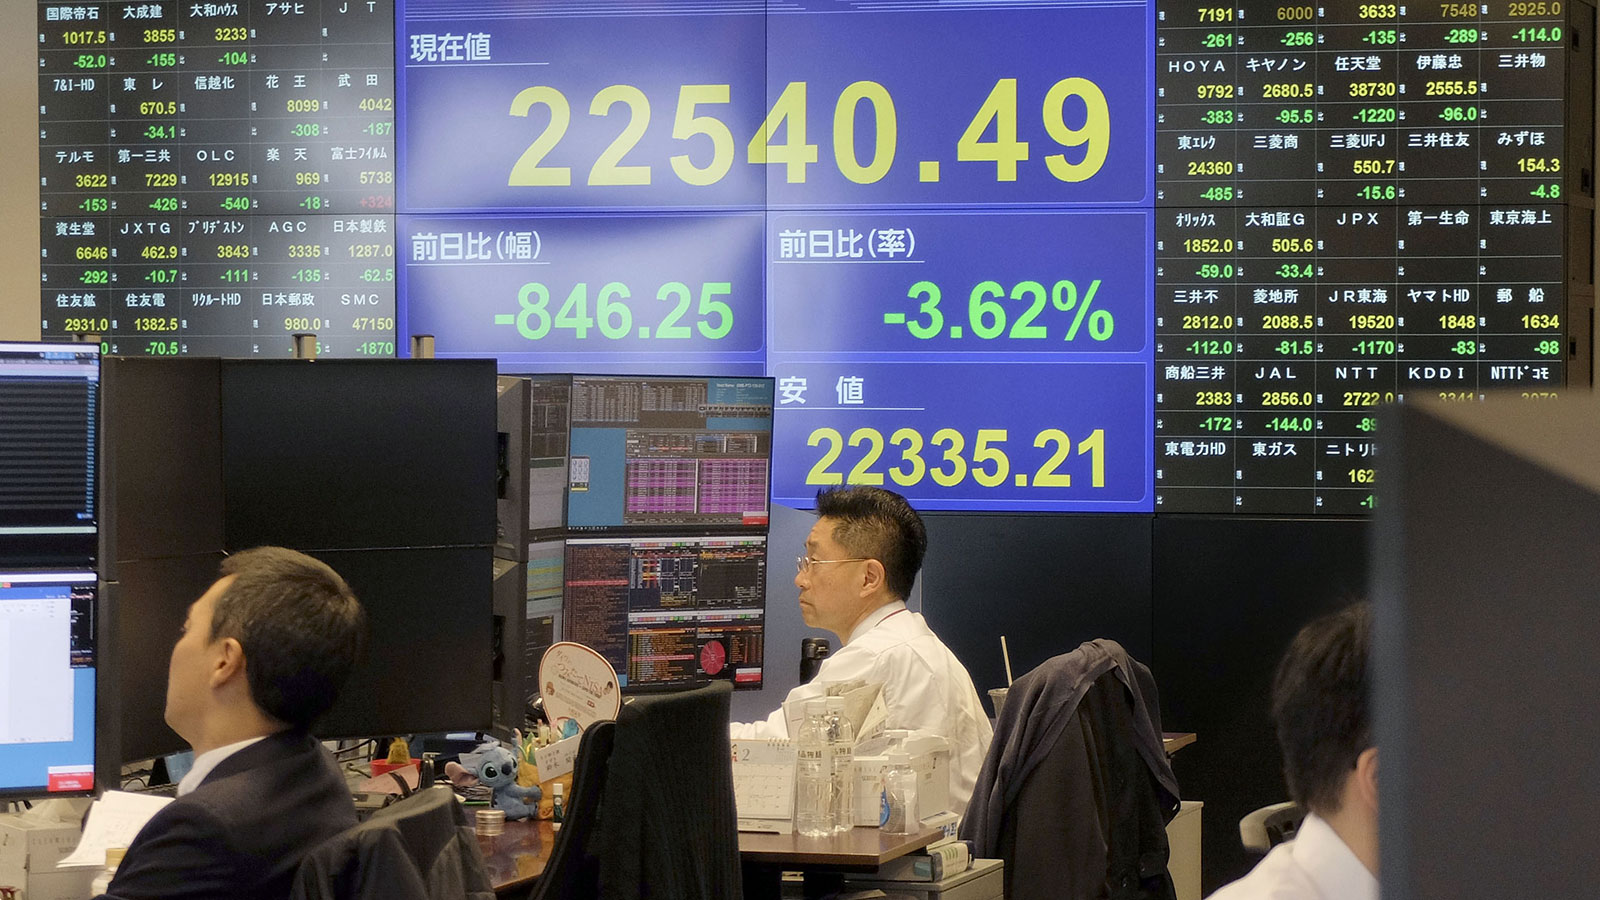 A financial board at a Daiwa Securities Co. outlet in Tokyo shows the Nikkei Stock Average plunging over 800 points in early trading on February 25, amid concerns over the spread of a new coronavirus.